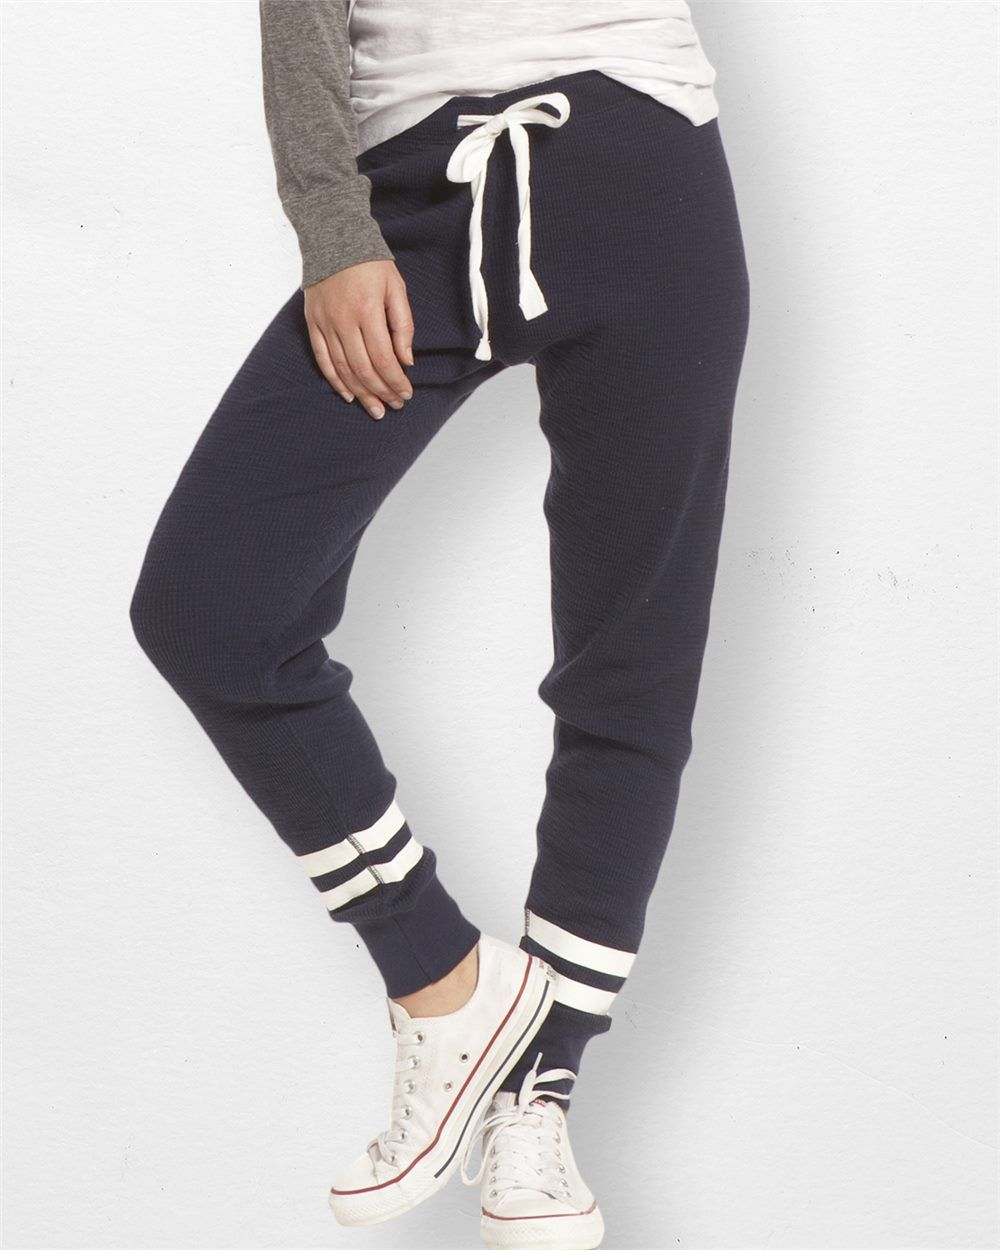 ced5209fe Boxercraft YG60 - Youth Game Day Jogger | CFKI Apparel Ideas ...